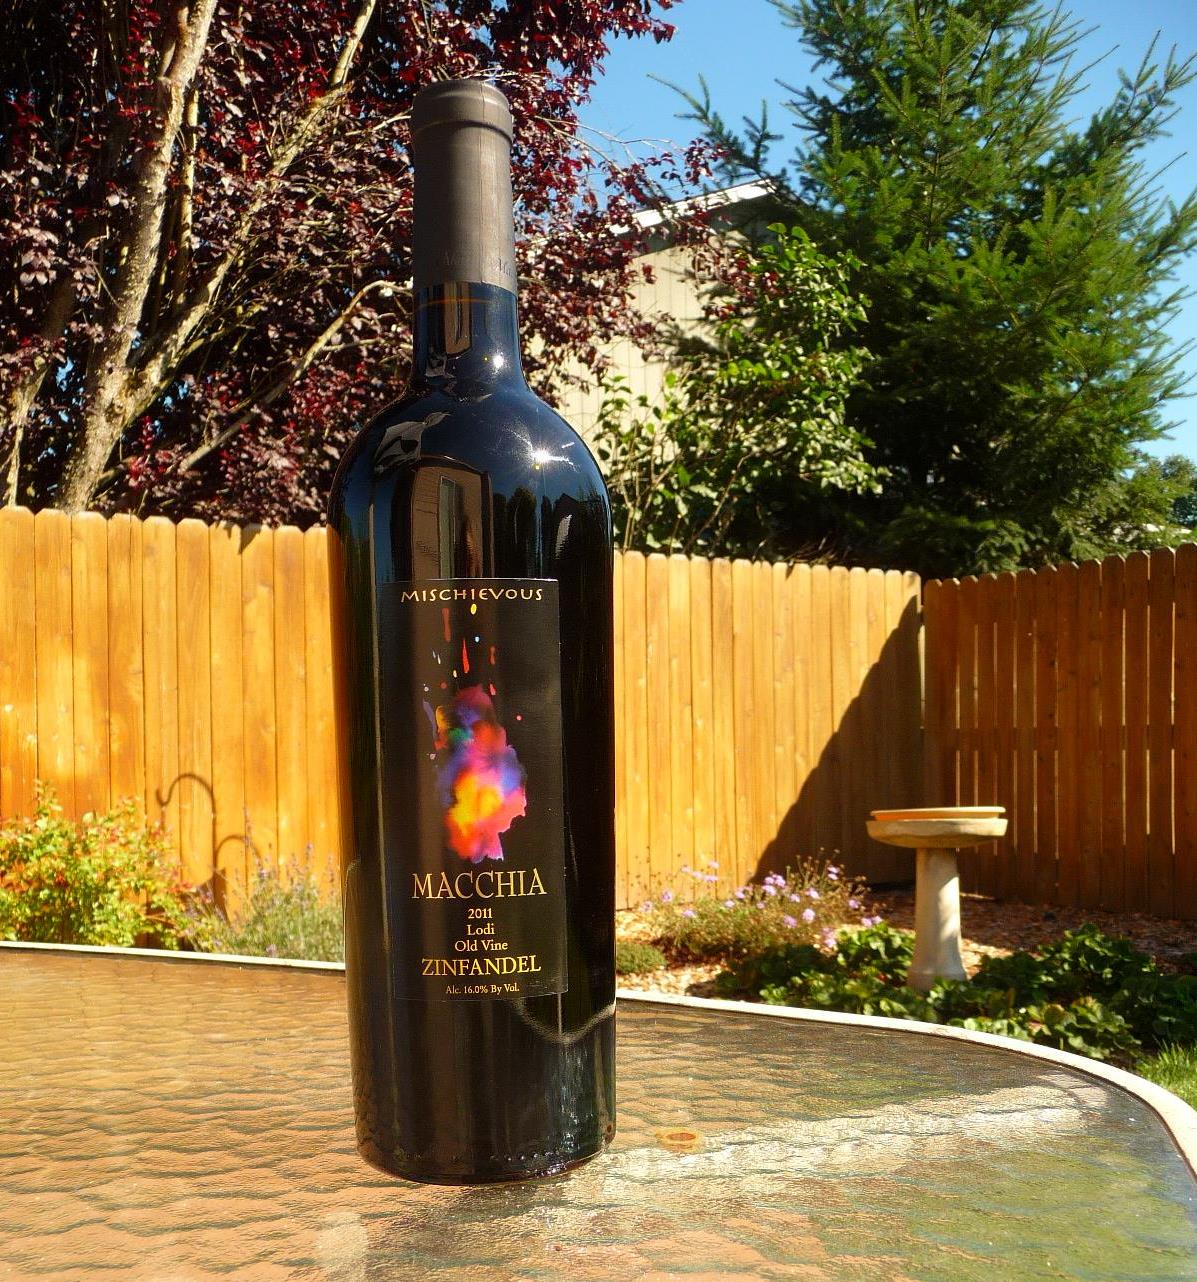 The fruit-forward tasting notes of this 2011 Macchia Mischievous Zinfandel pairs nicely with burgers, steaks and ribs.